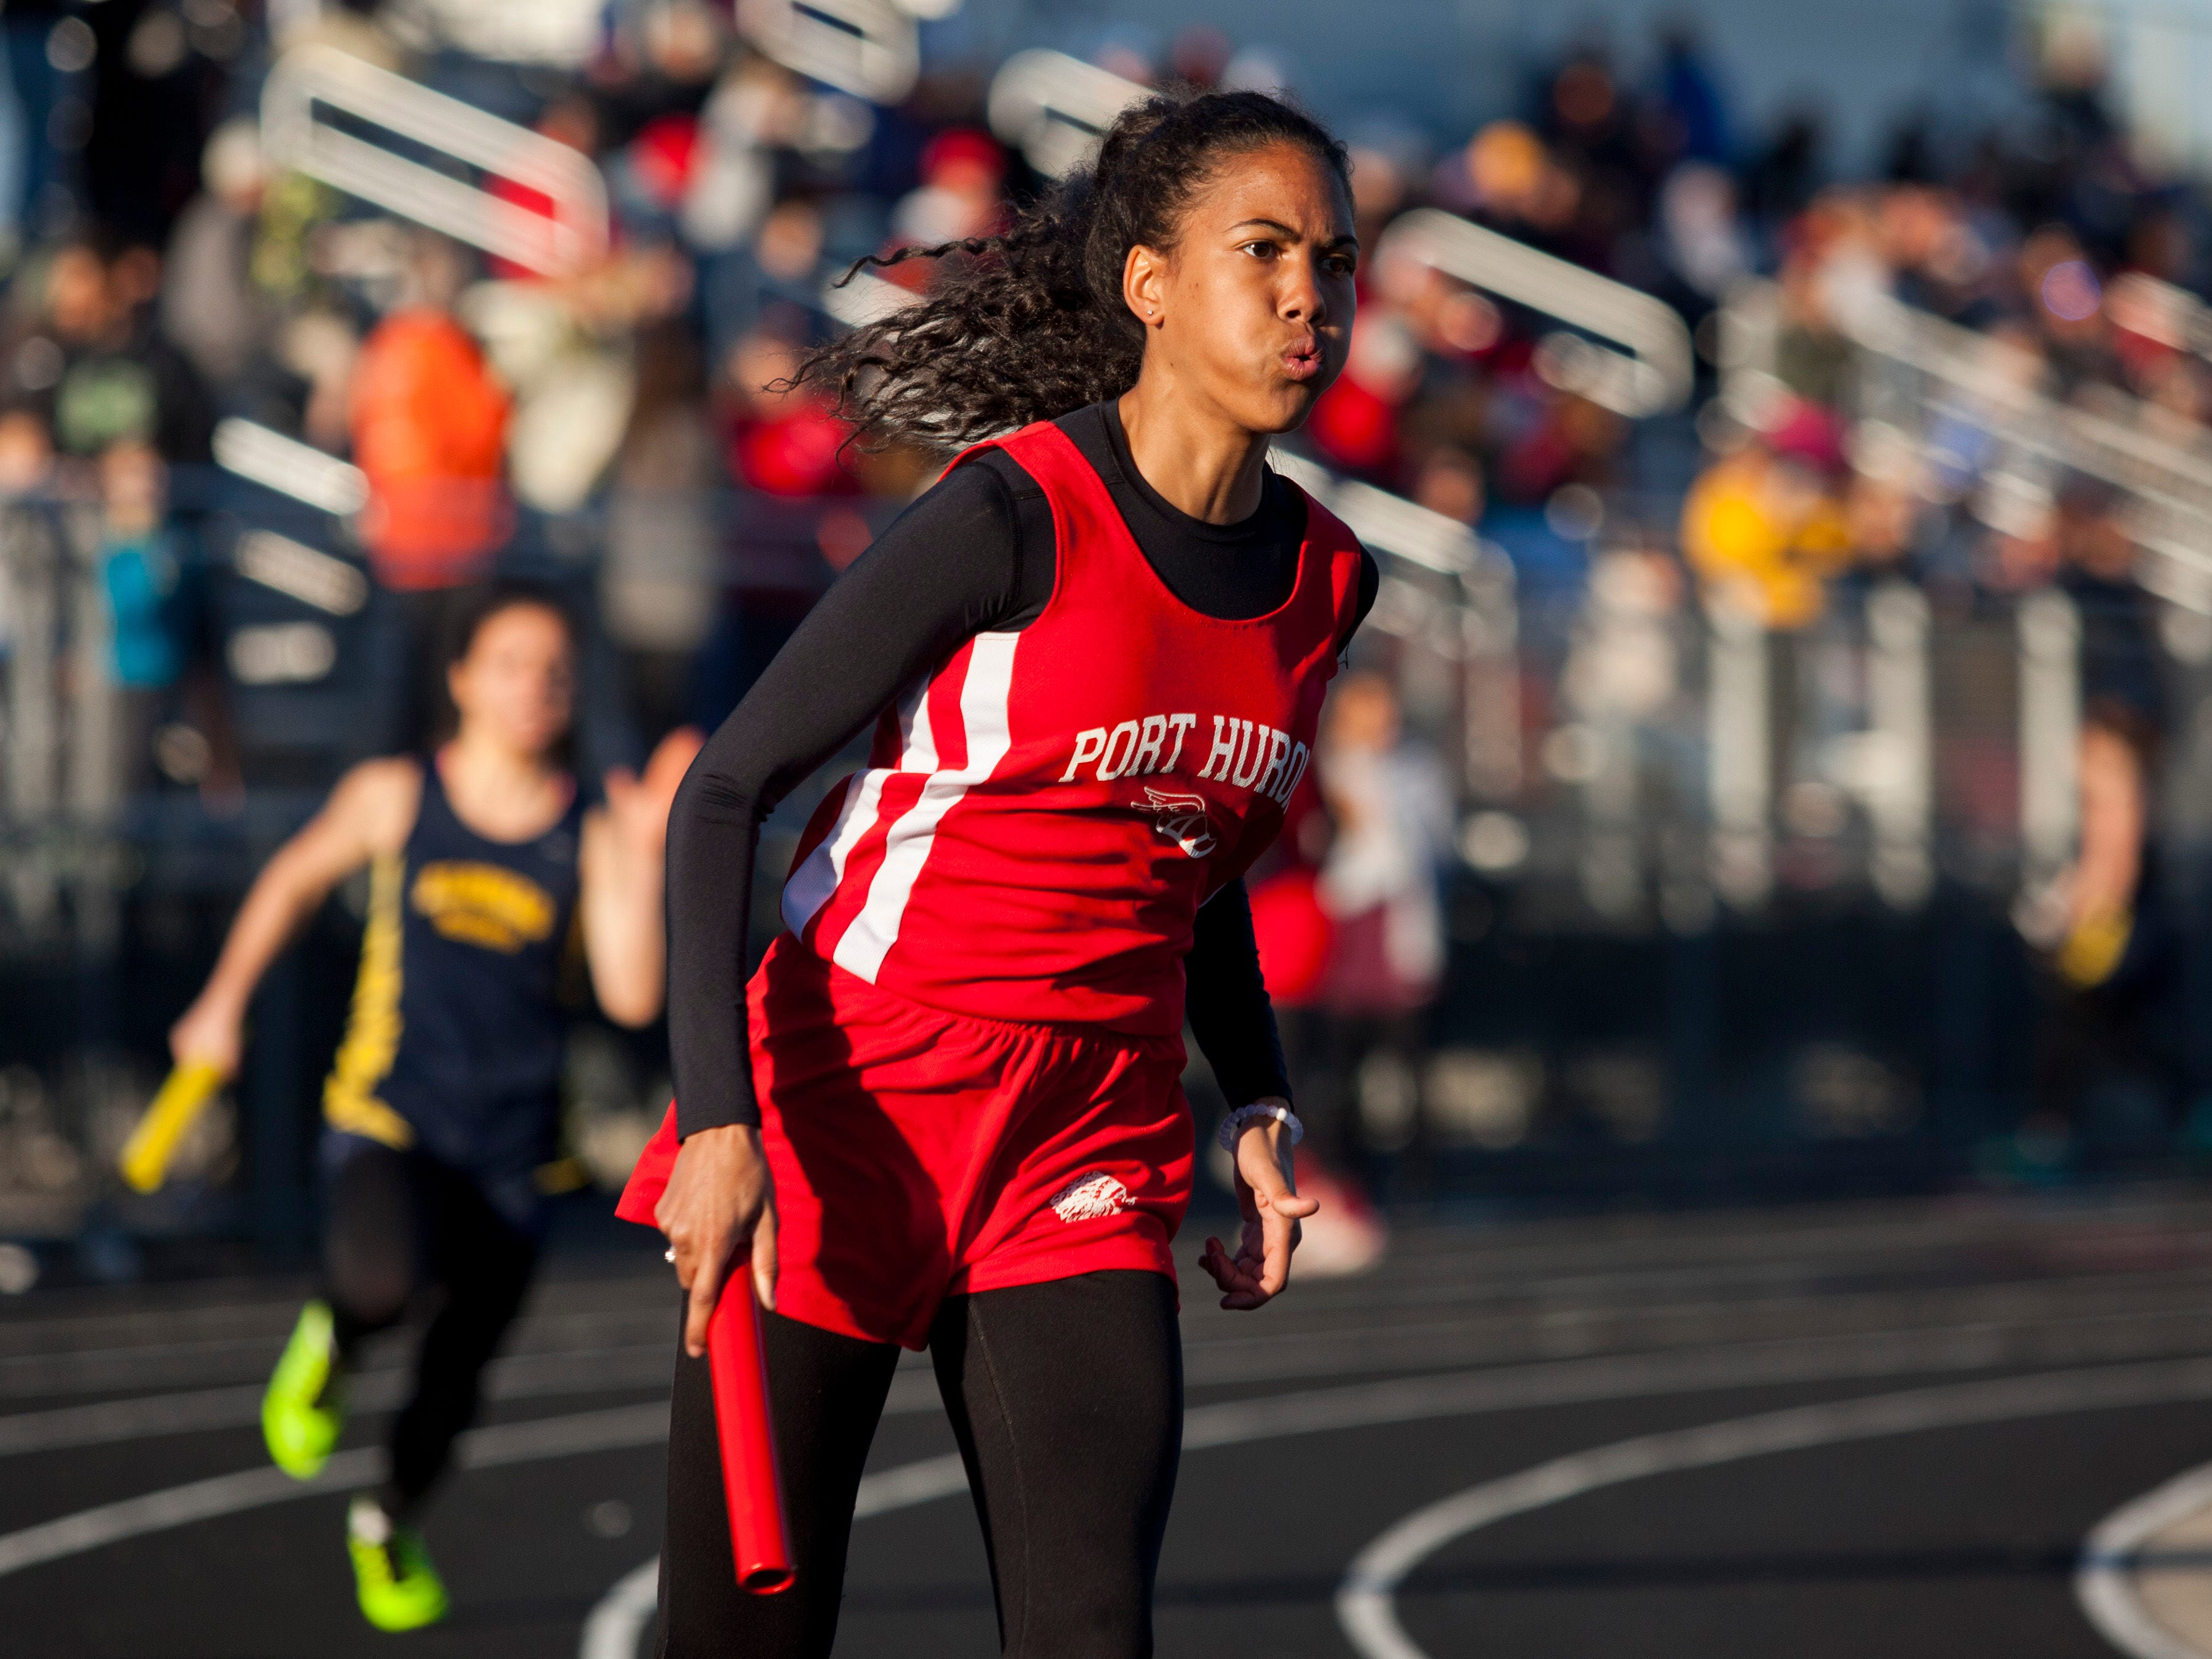 Port Huron sophomore Kelsey Chapman competes in the 400-meter relay during the Meet of Champions Friday, May 22, 2015 at Marysville High School.